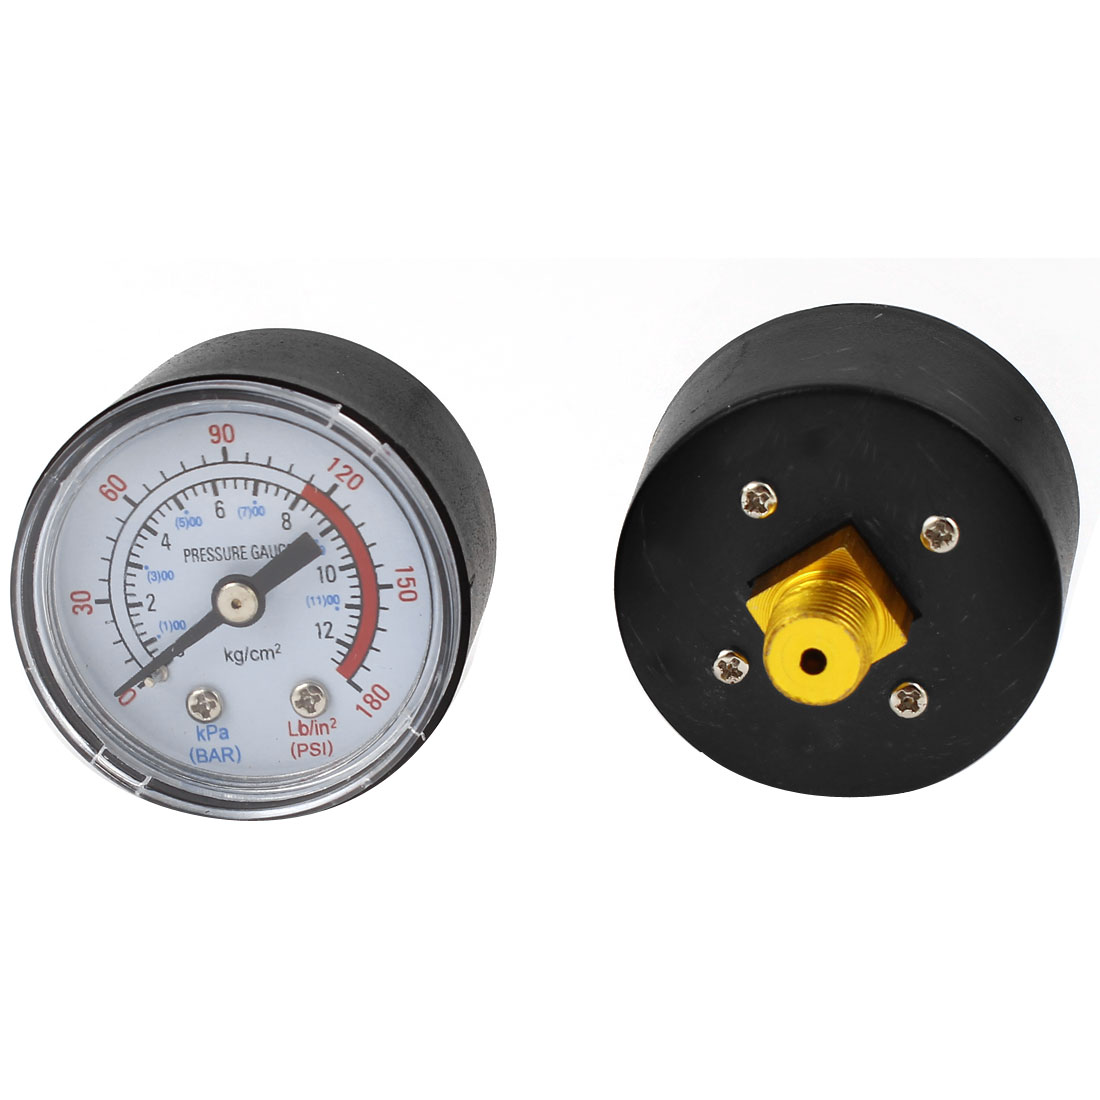 2 Pcs 40mm Dial 1/8PT Air Compressor Barometer Pressure Gauge 0-180Psi 0-12Bar